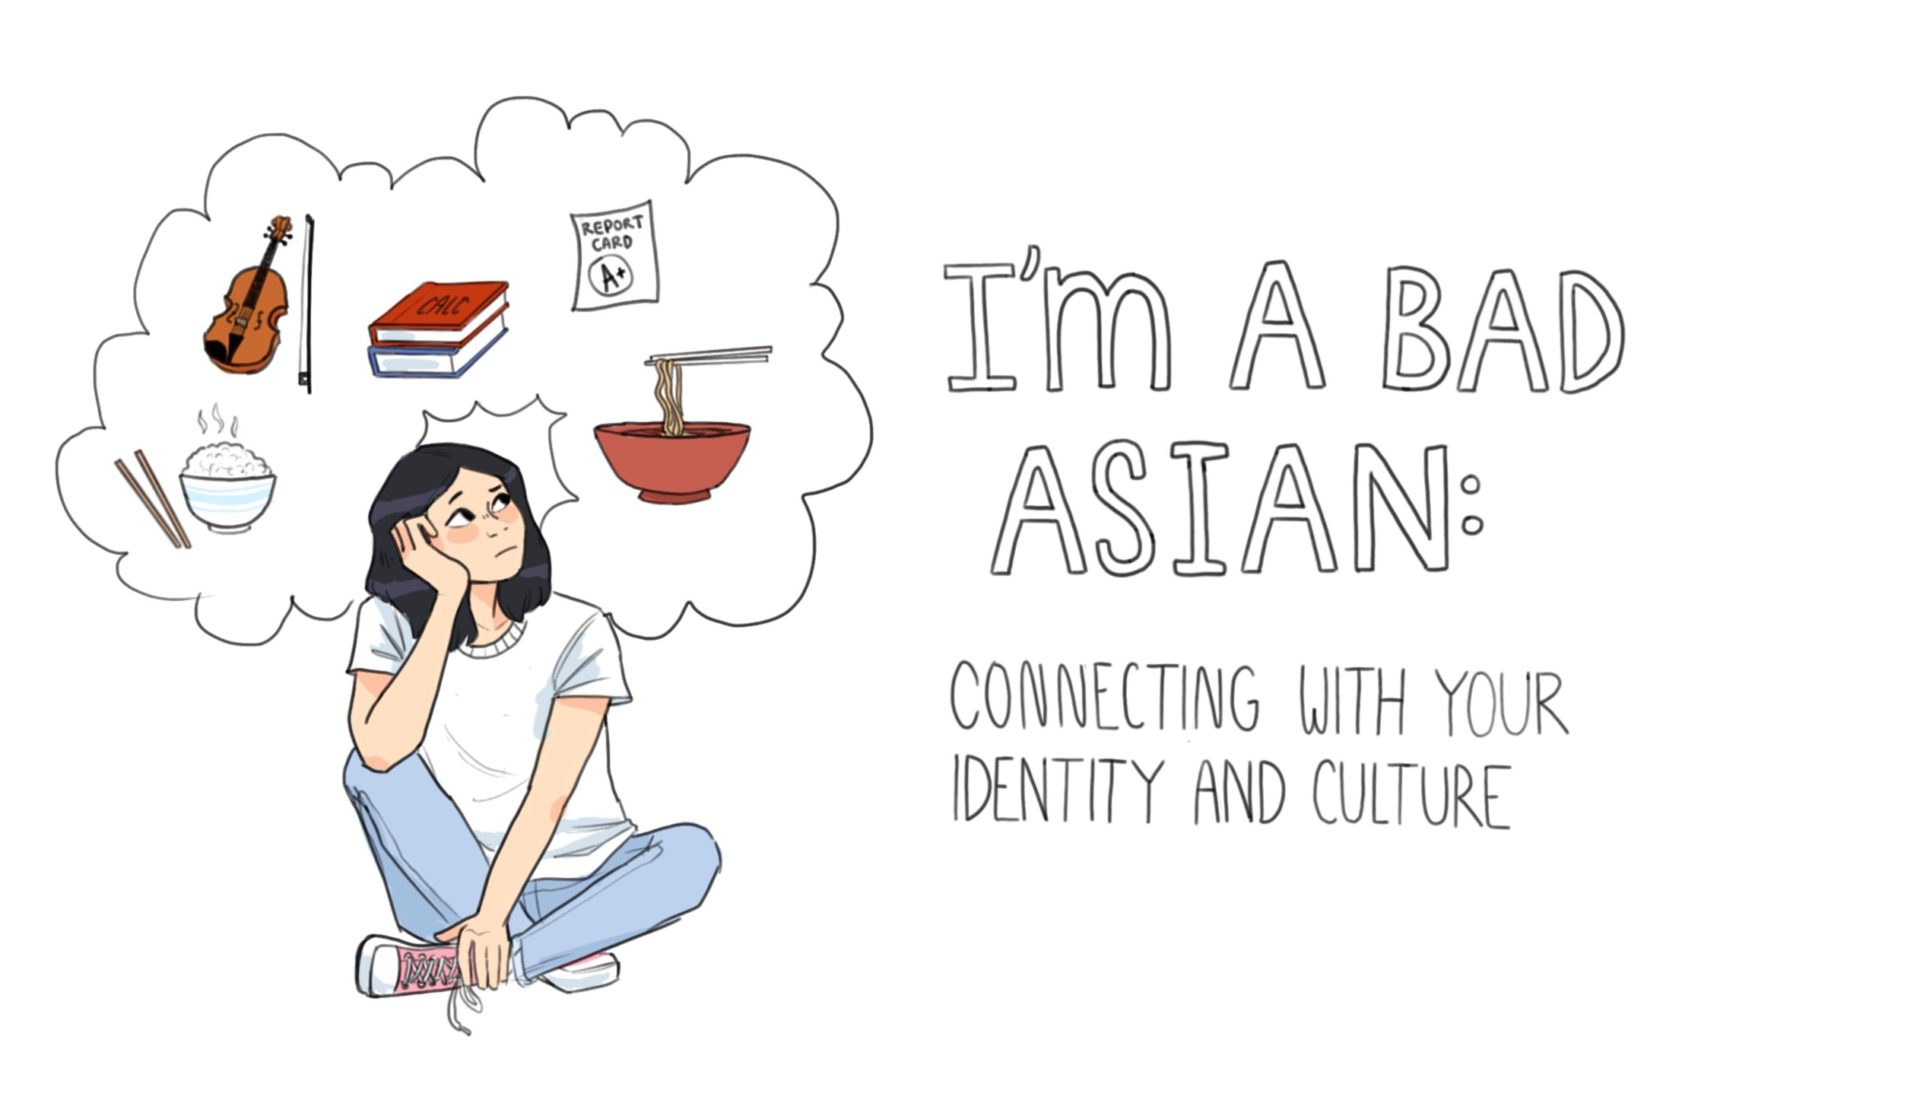 asian-american-article-cover-photo-1920x1100.jpg